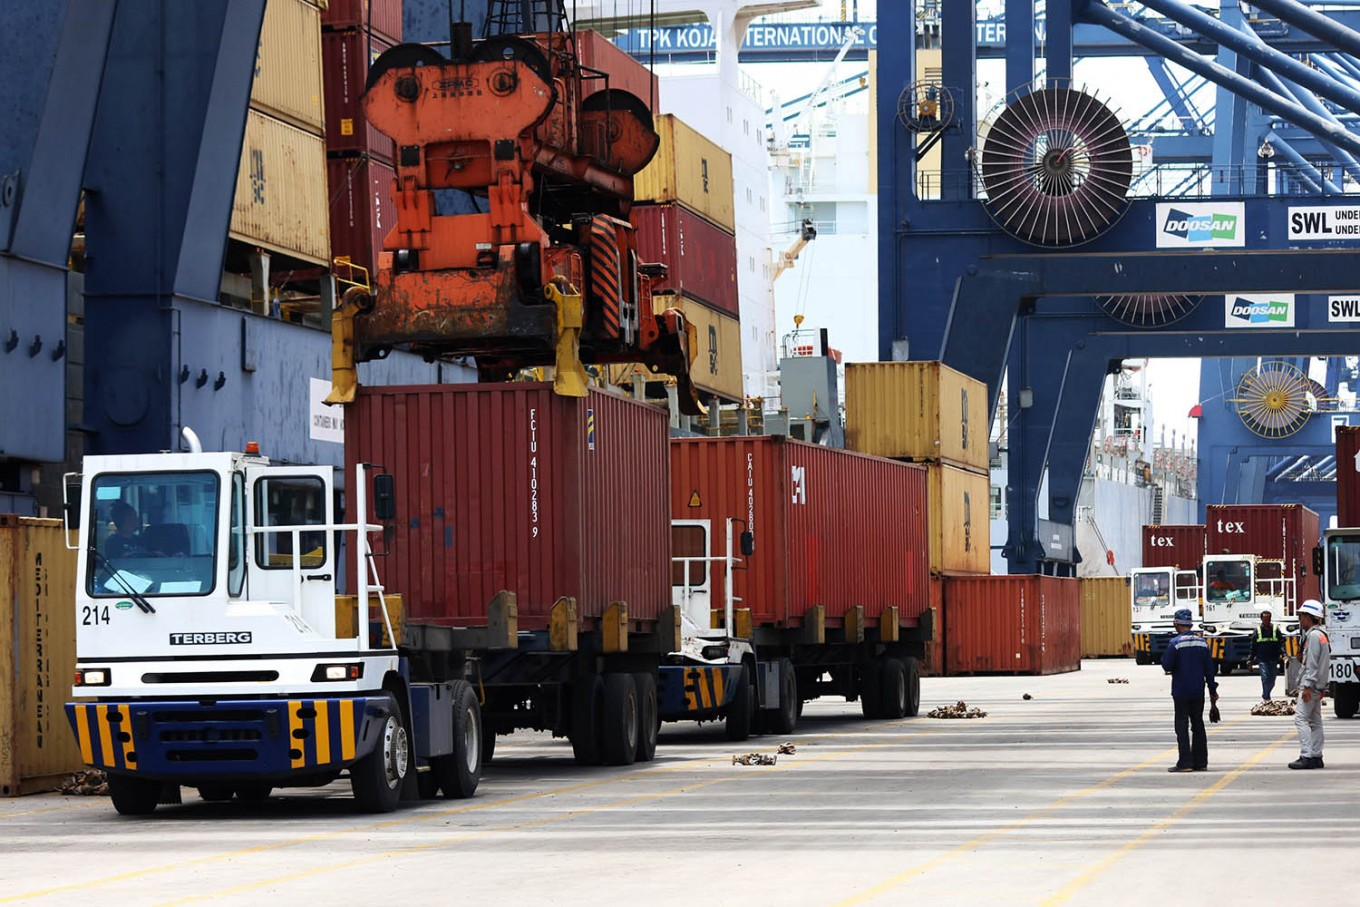 Indonesia takes over part of Singapore's logistics role